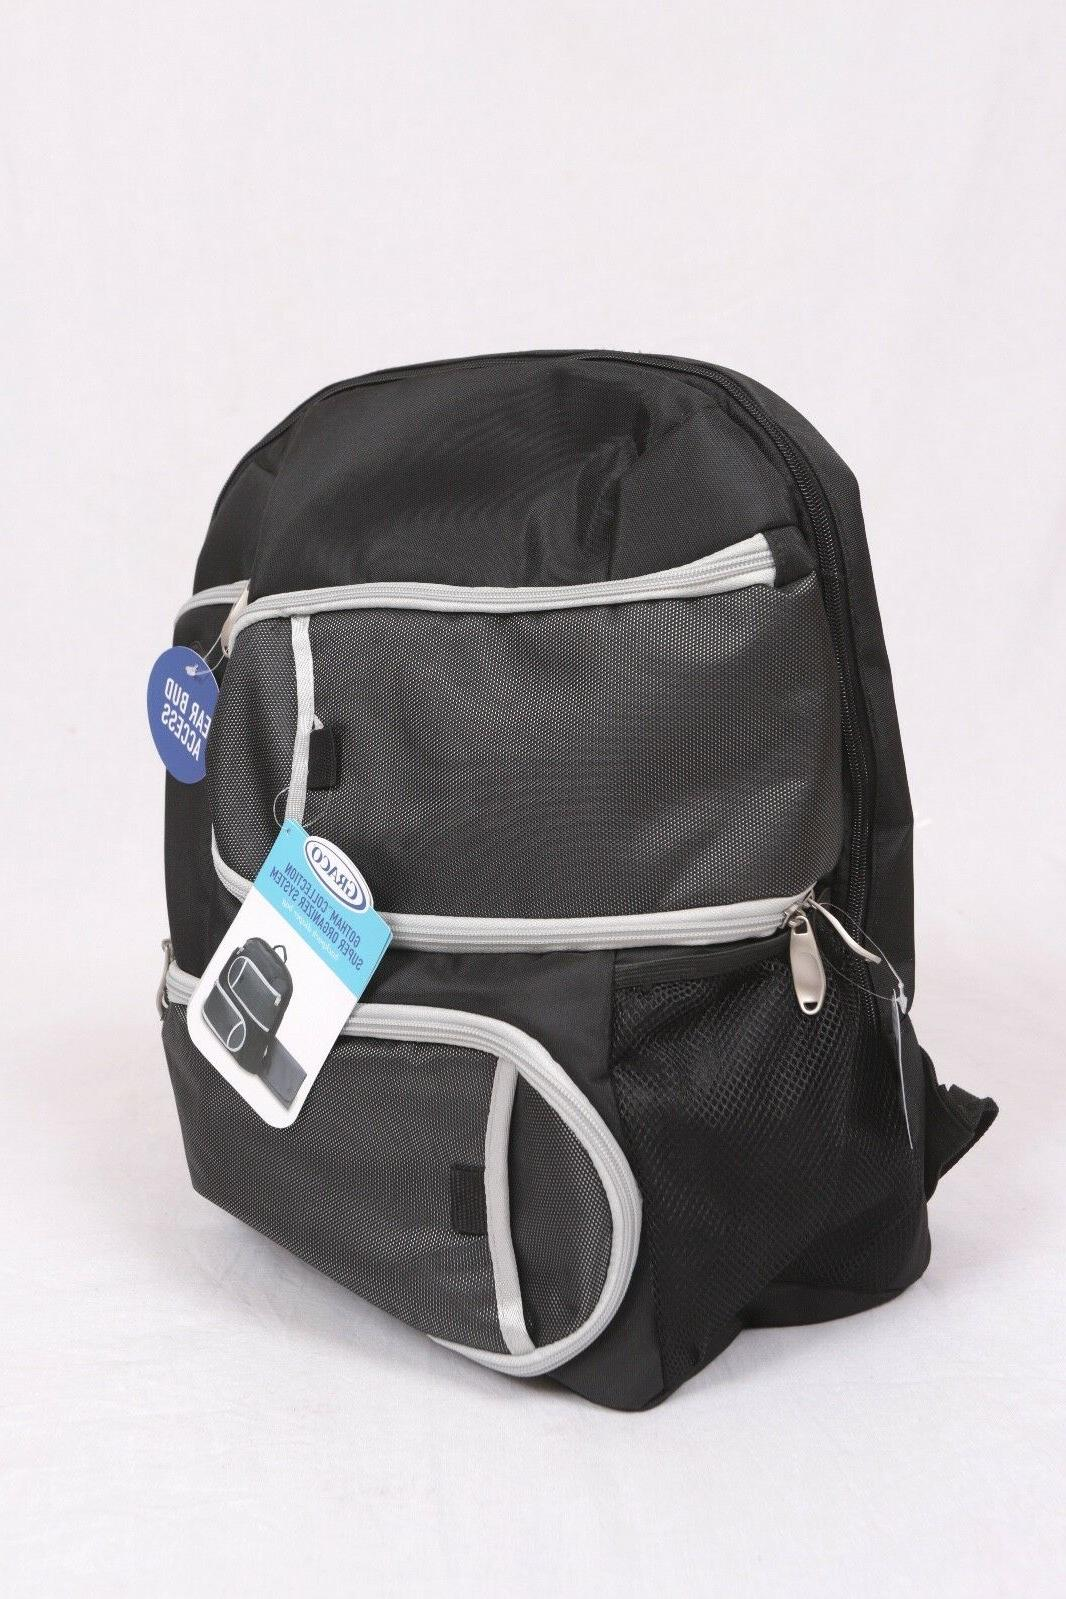 NWT Gotham Collection Super System Backpack Diaper